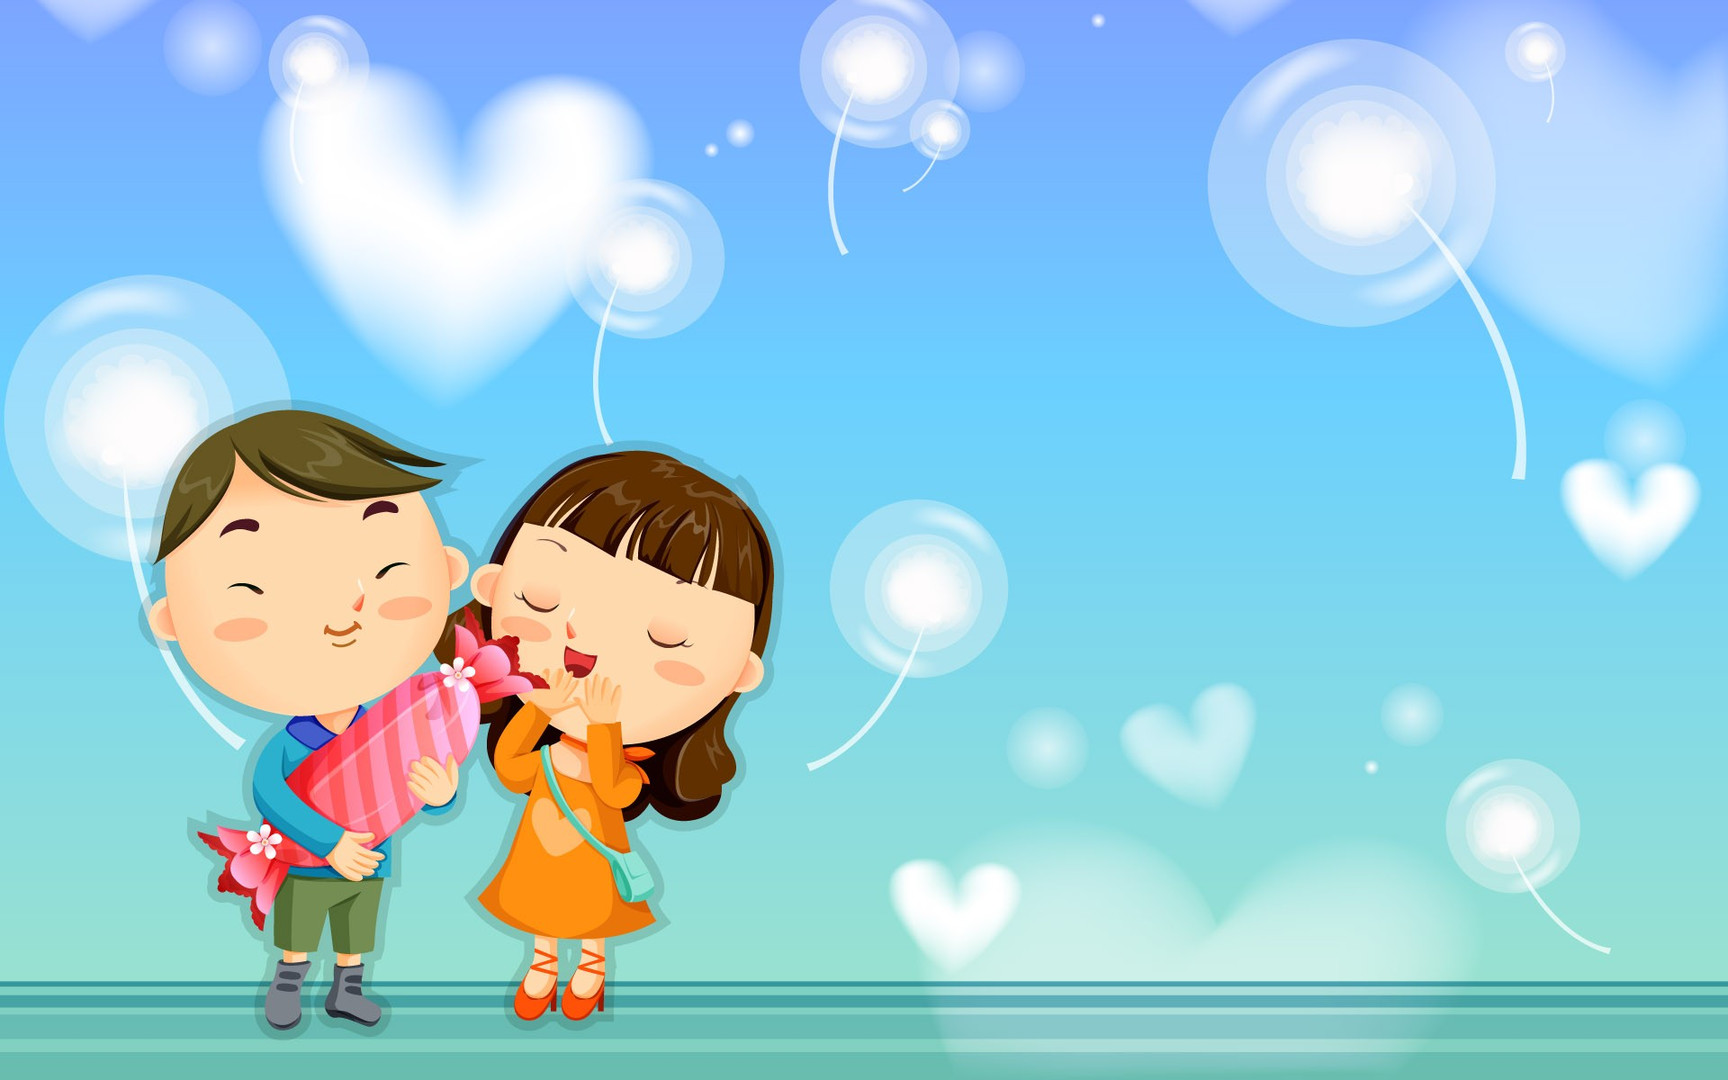 Love cartoon Wallpapers : cartoon Love Wallpapers - Wallpaper, High Definition, High Quality, Widescreen